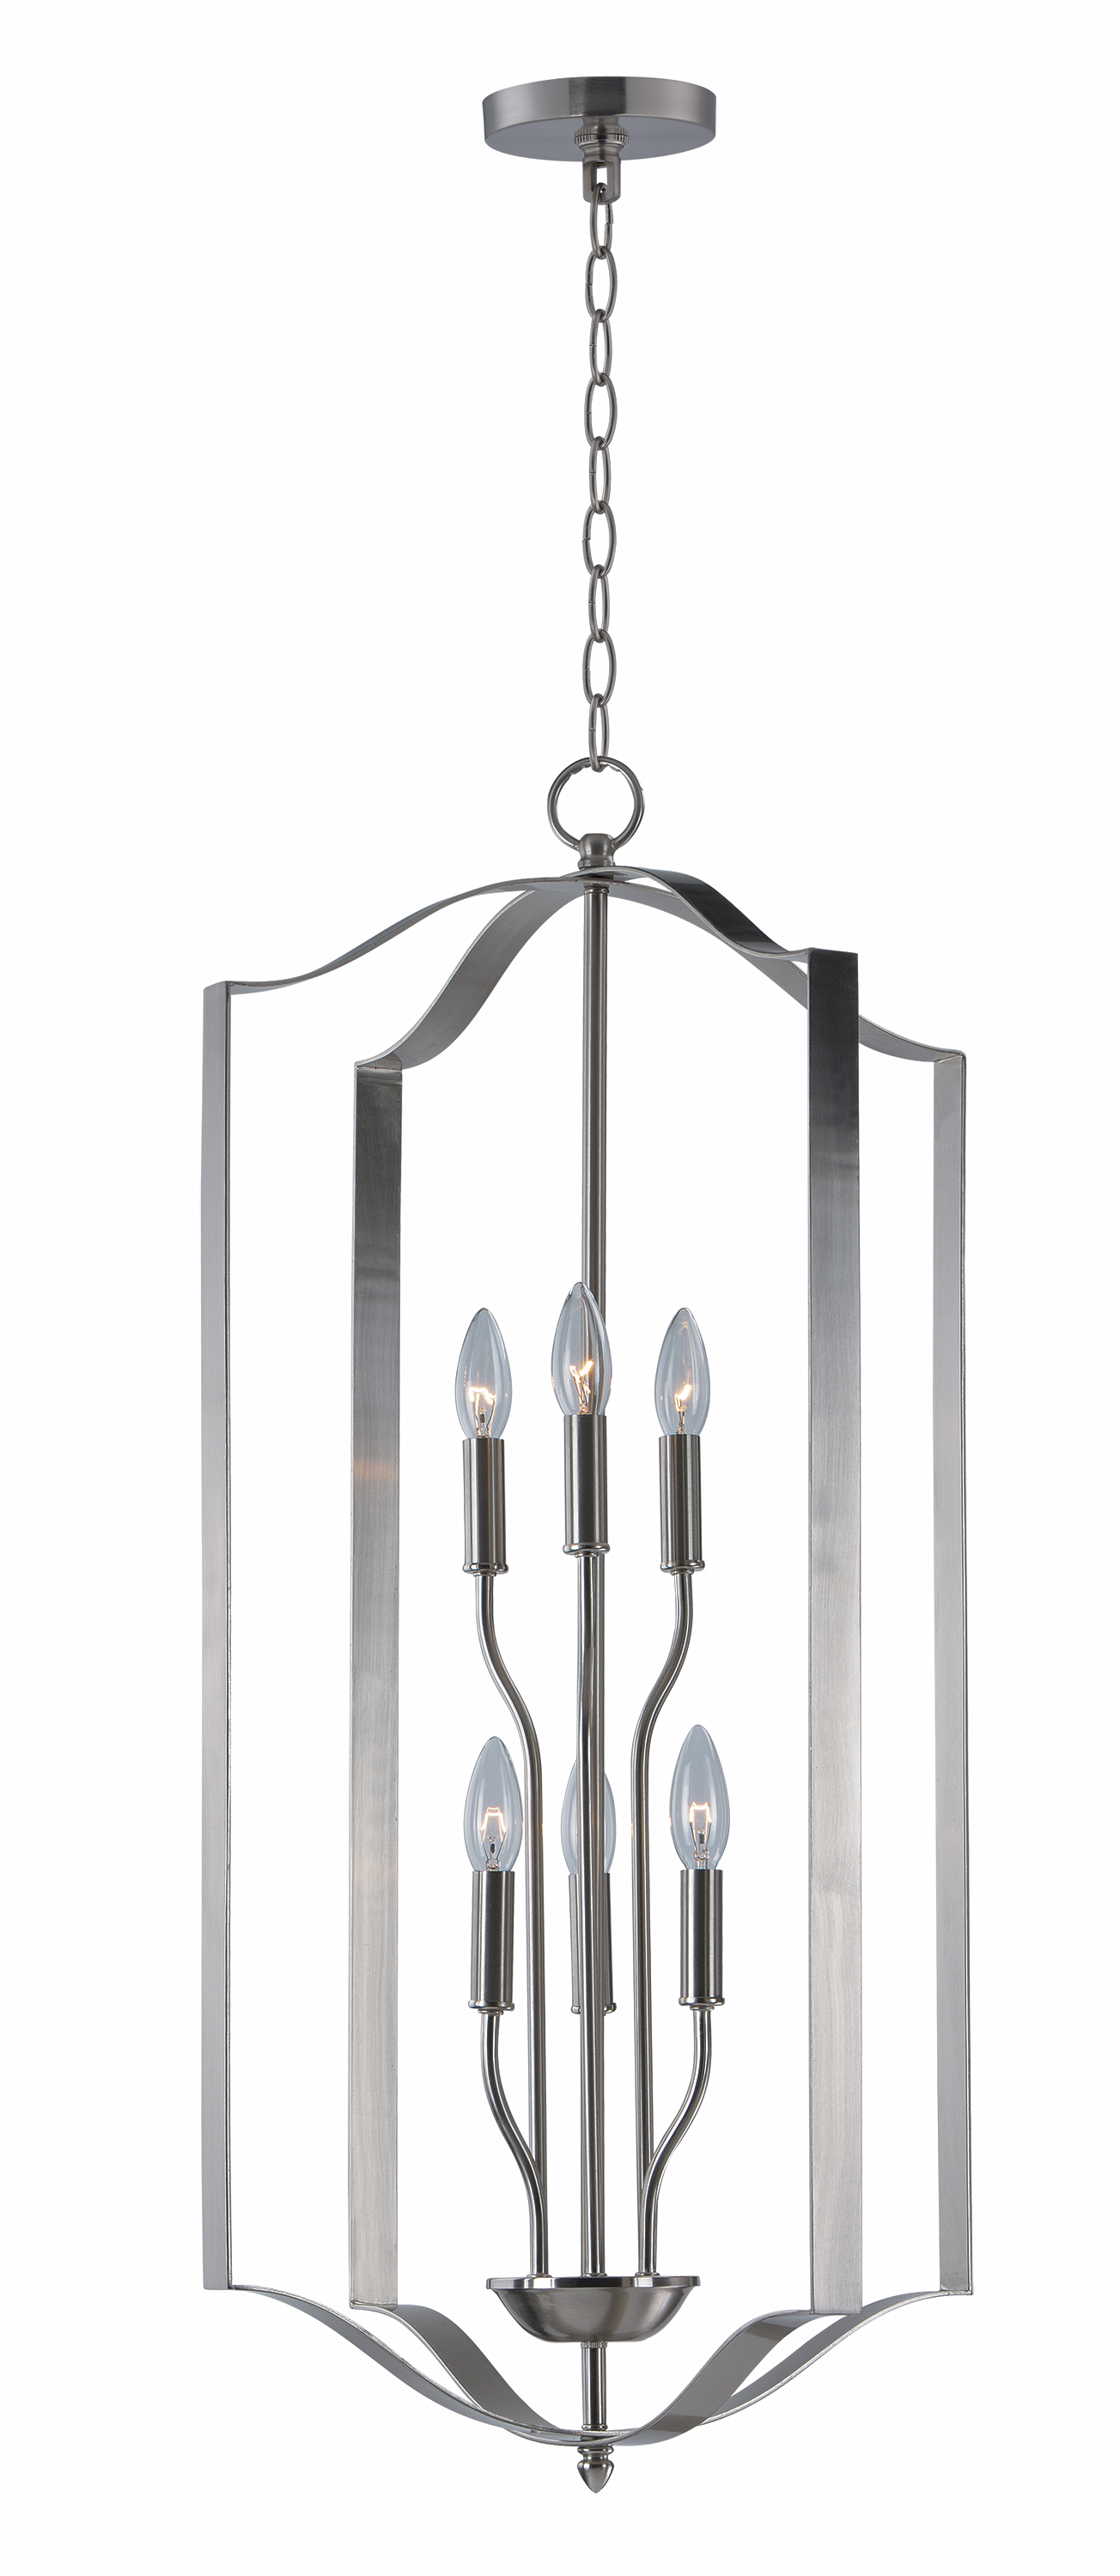 Provident Pendant | Maxim Lighting